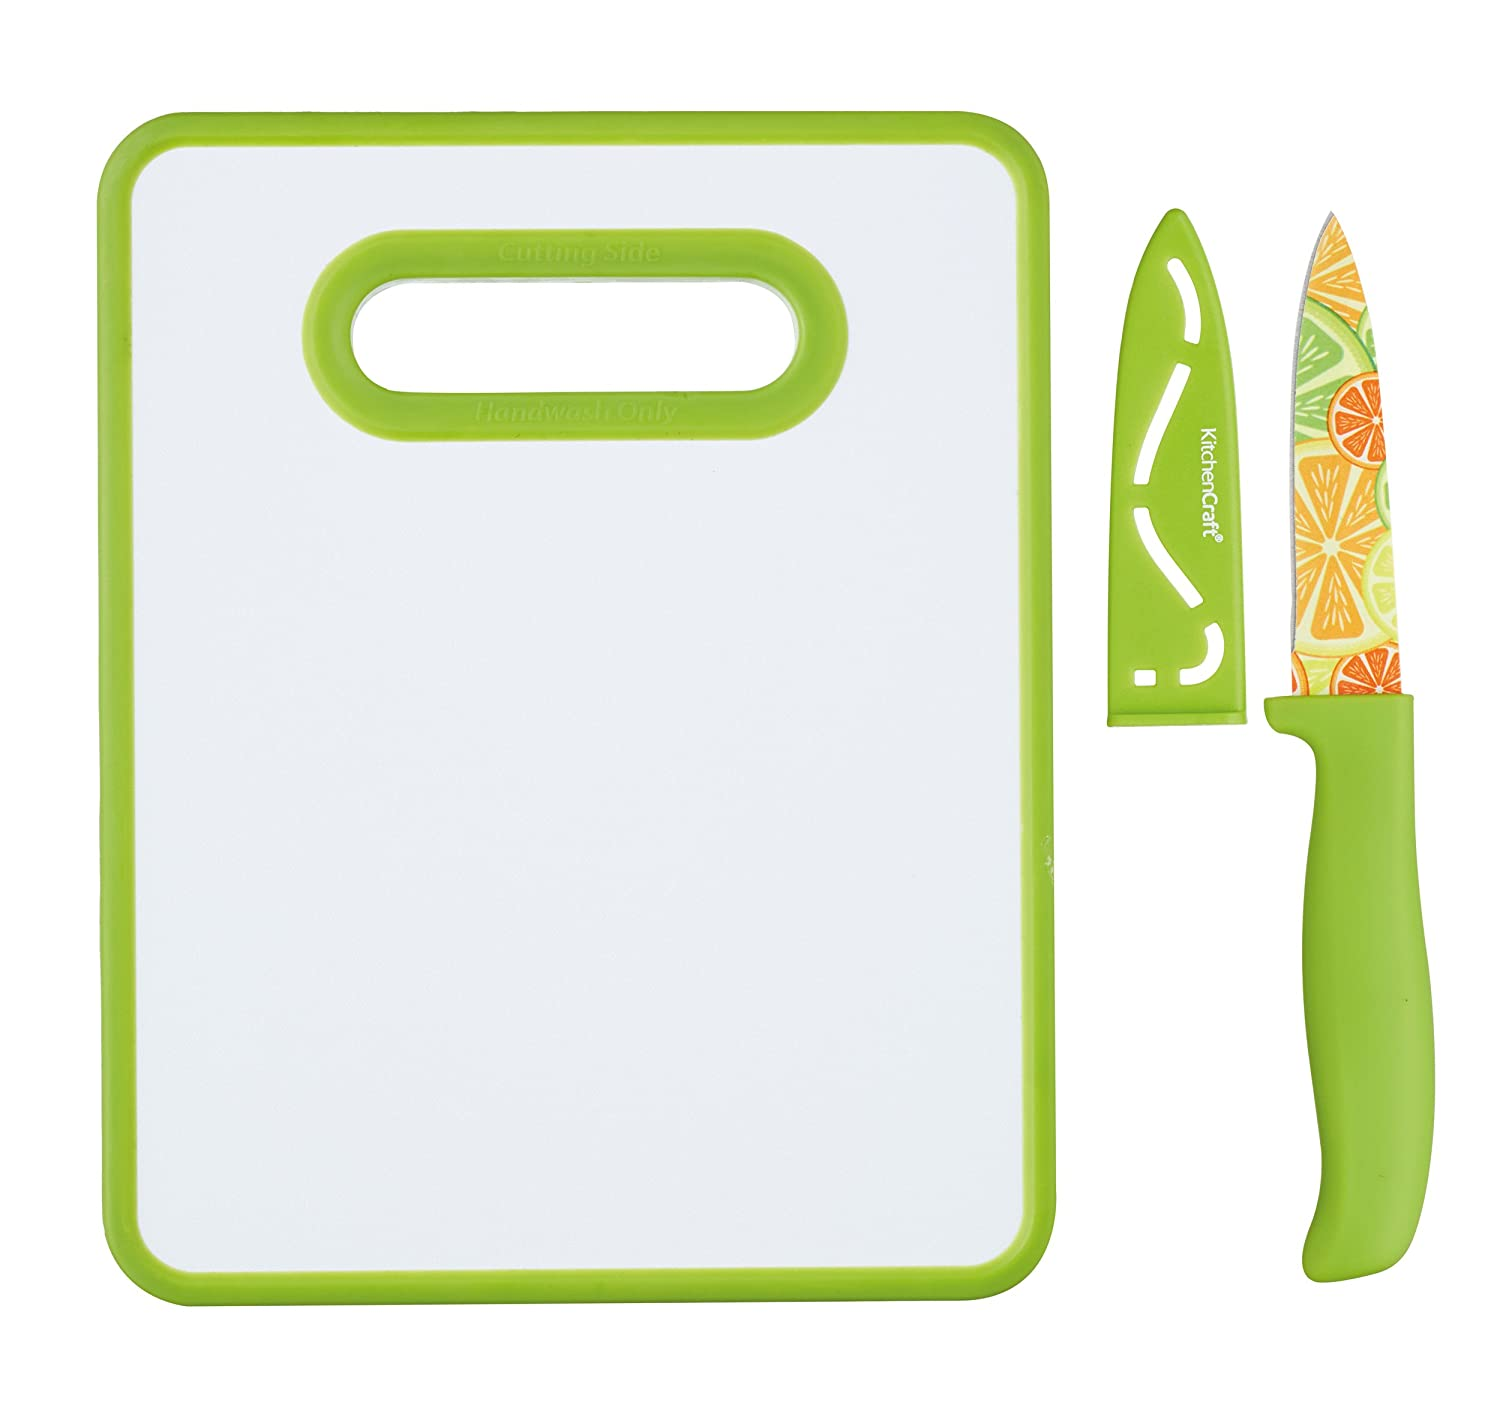 KitchenCraft Healthy Eating Non-Stick Patterned Plastic Chopping Board and Paring Knife Set, 25.5 x 20.5 cm (10